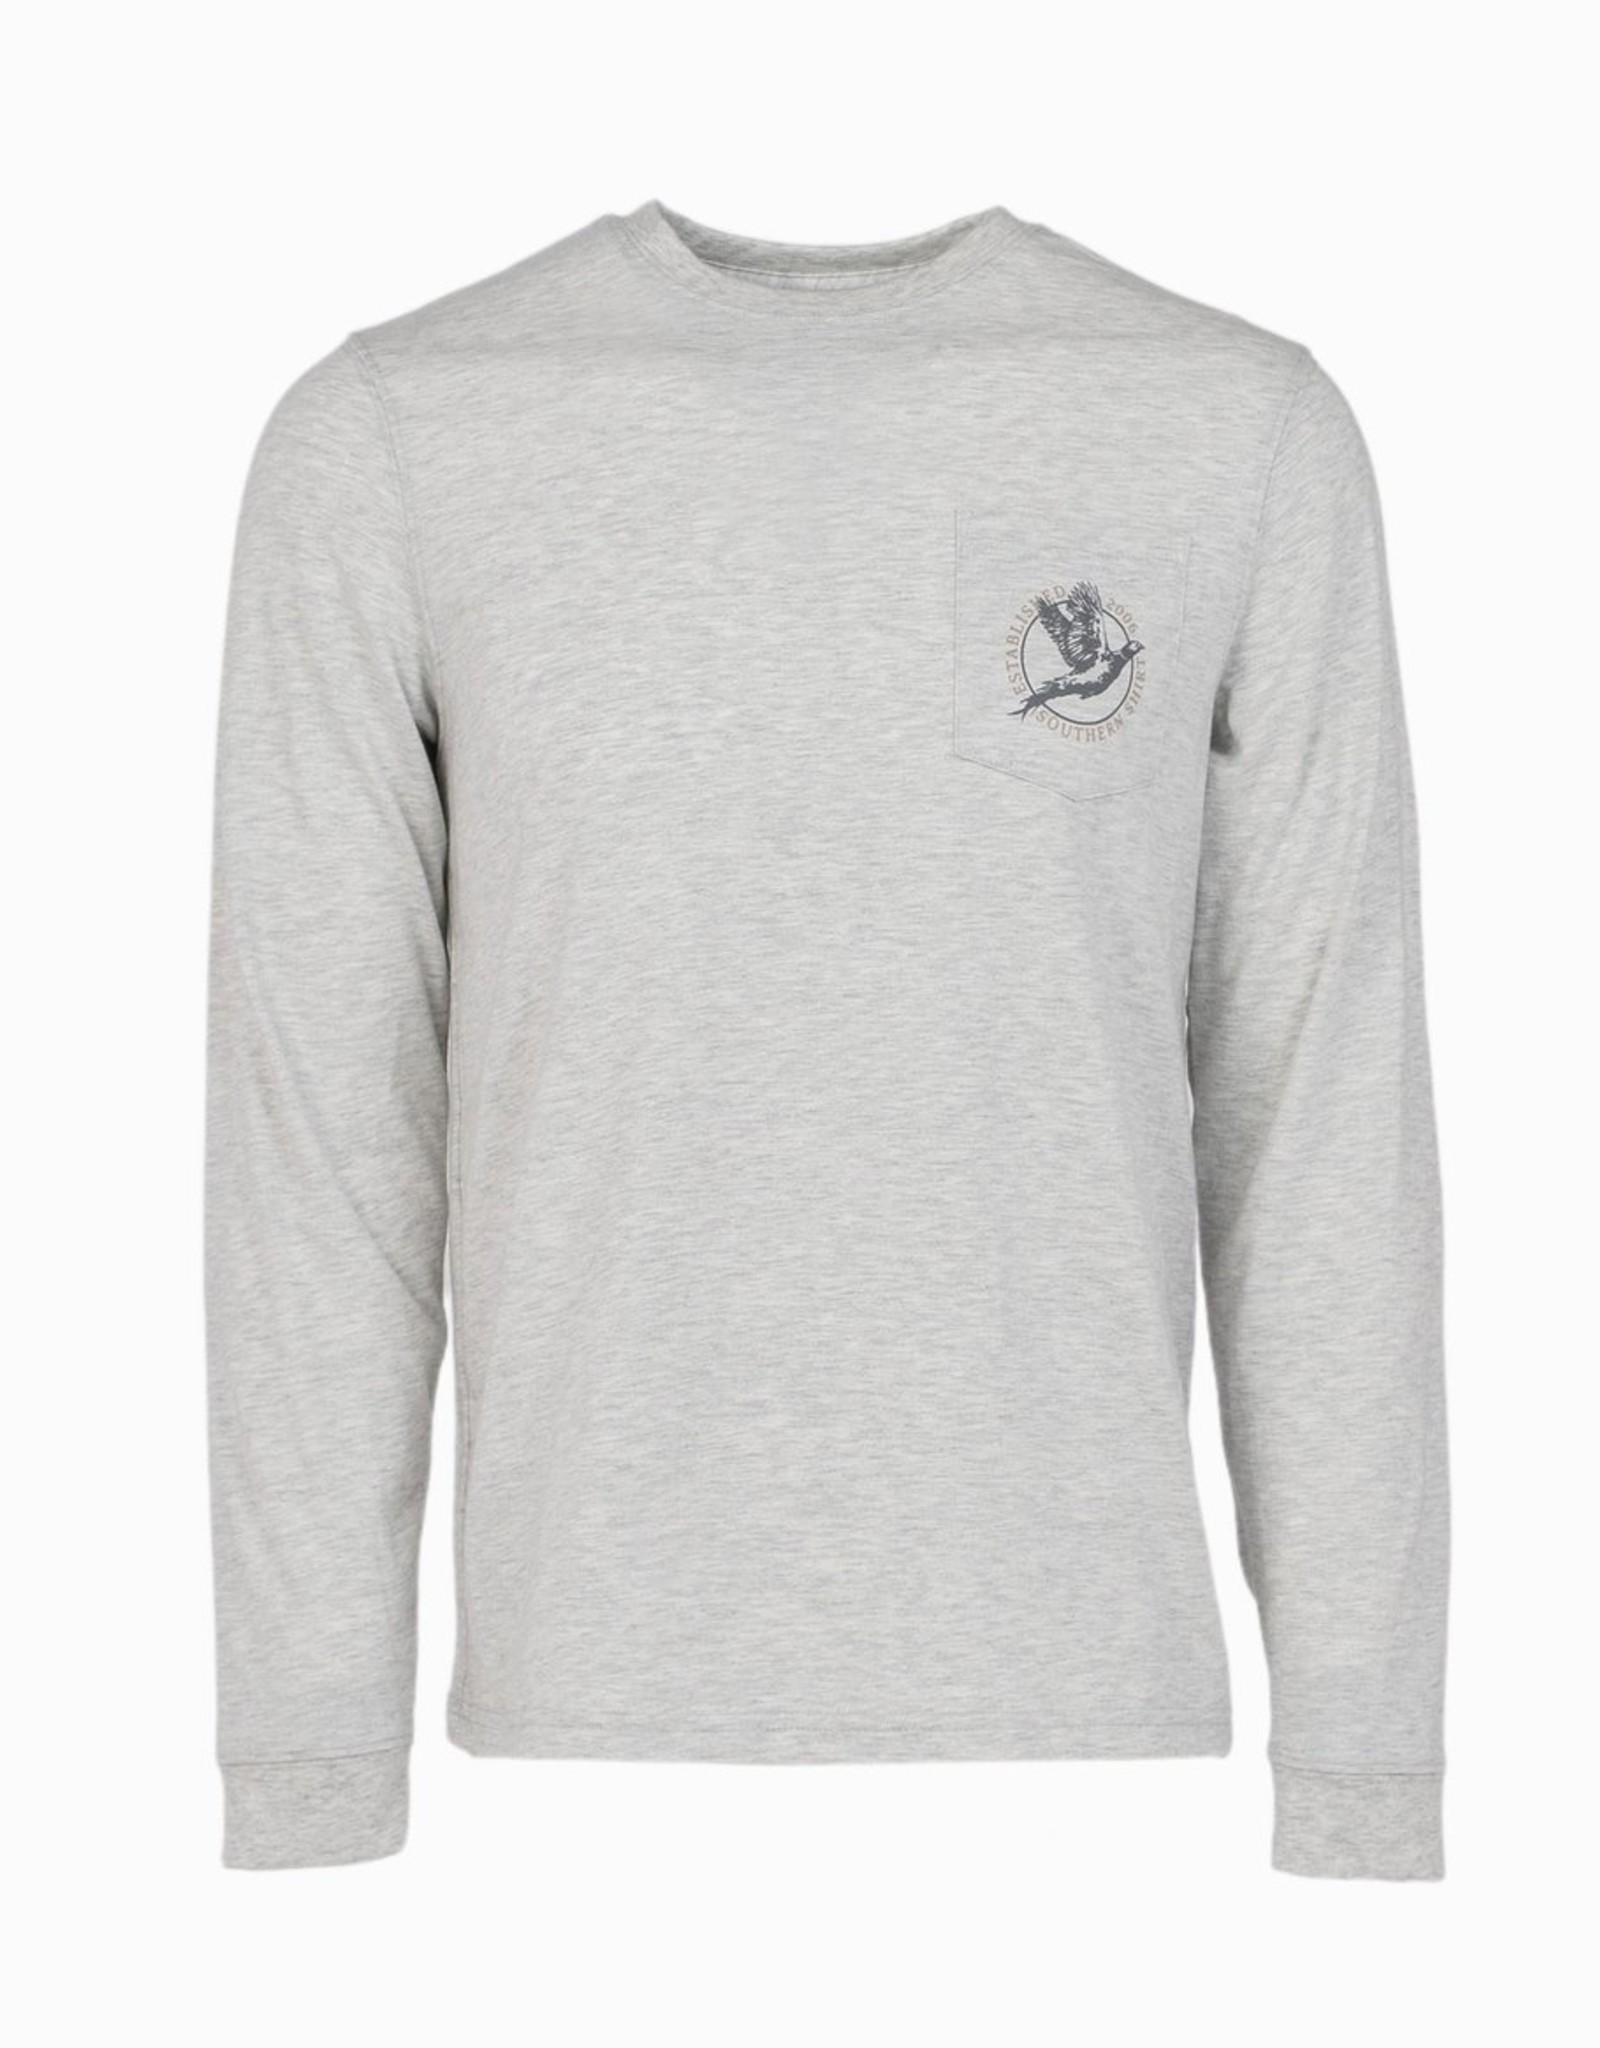 Southern Shirt On Command Tee LS